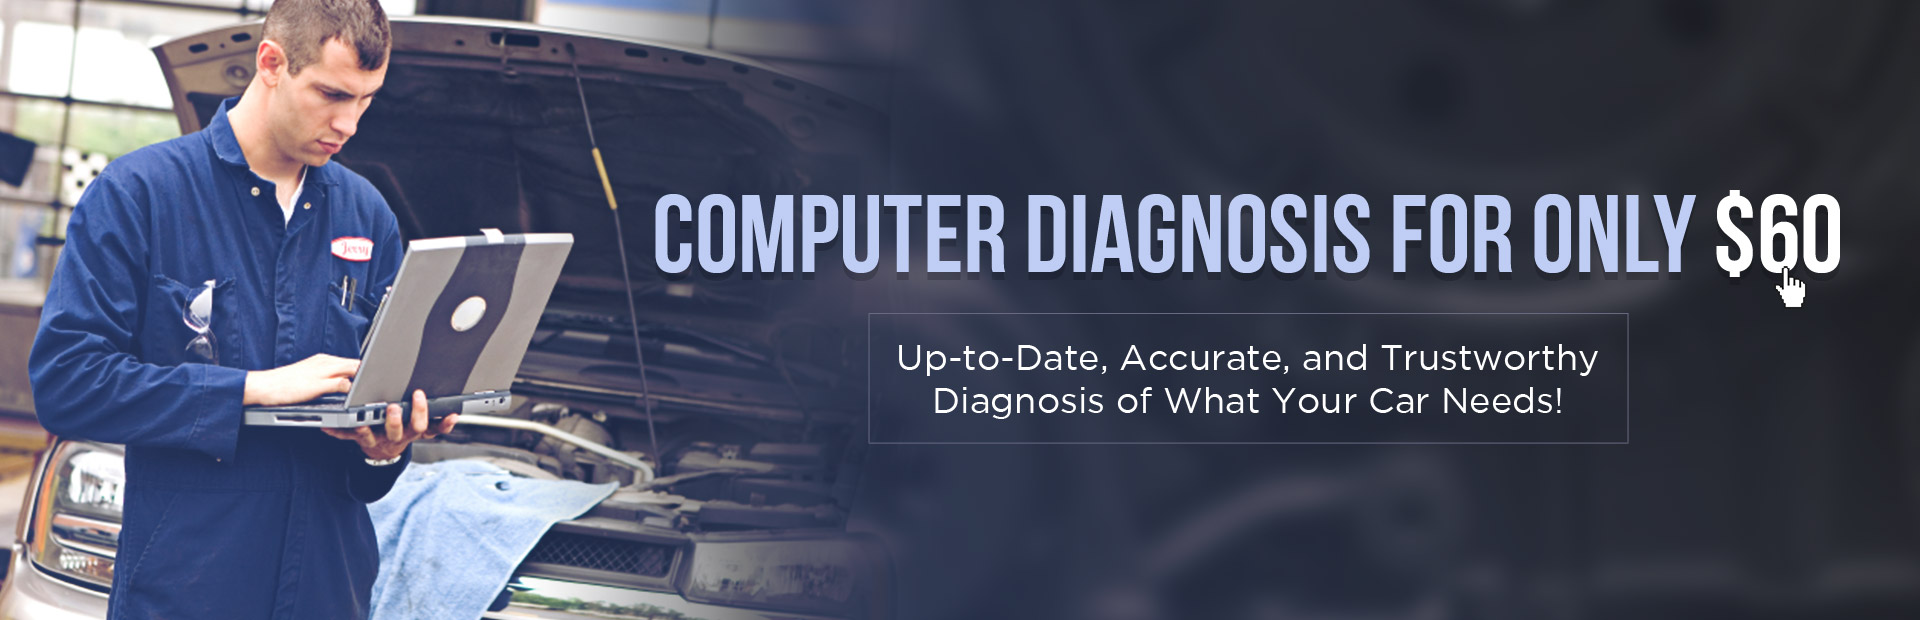 Computer Diagnosis for Only $60: Get an up-to-date, accurate, and trustworthy diagnosis of what your car needs! Contact us for details.